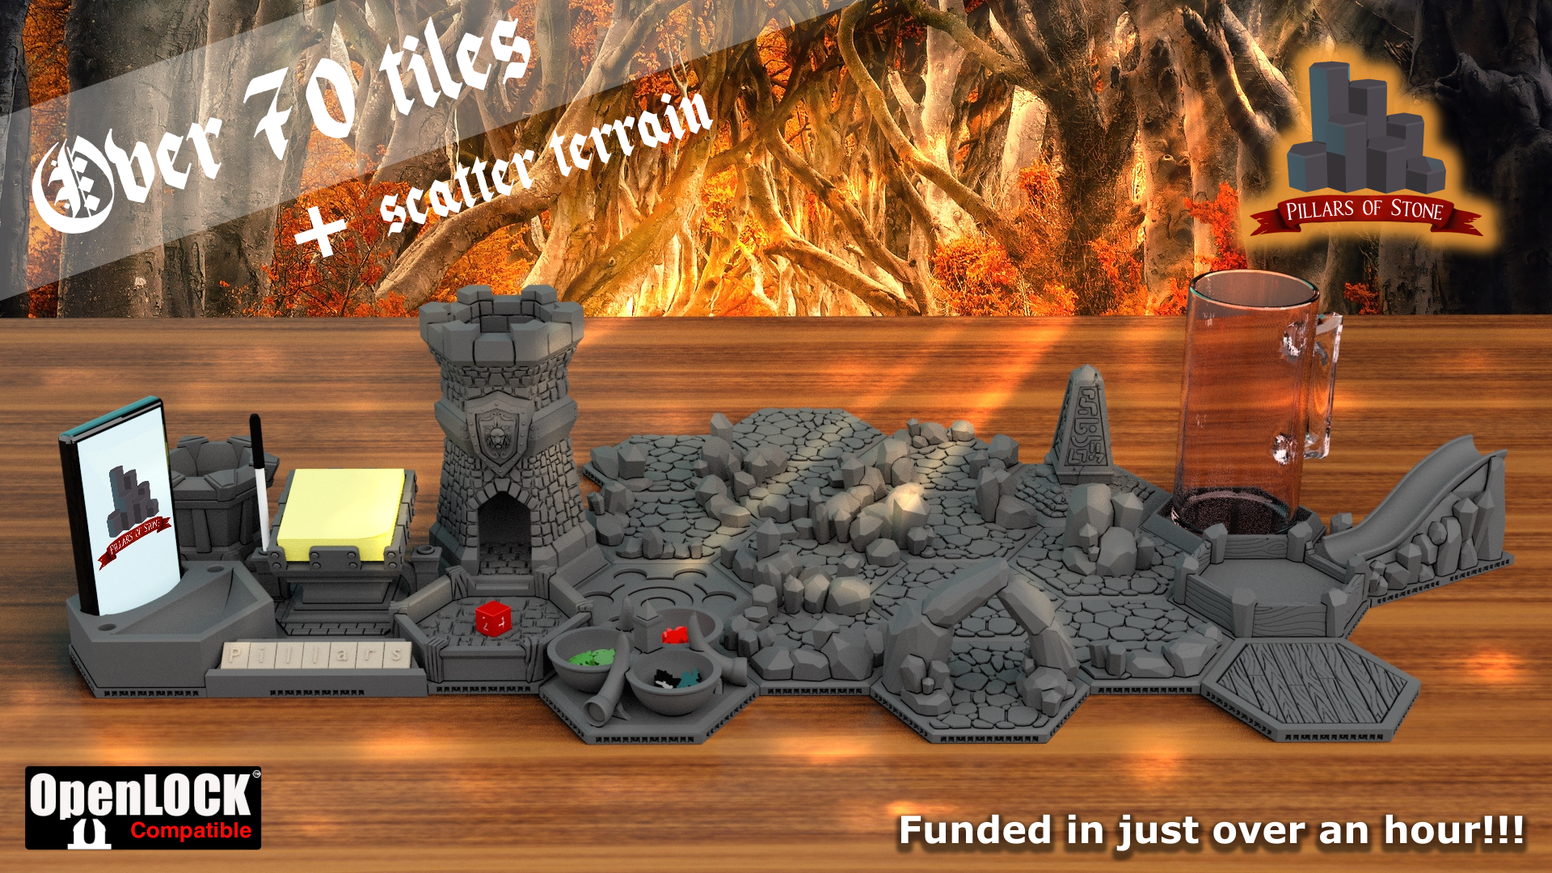 3D printabletabletop gaming tile system, Compatible with openLOCK. Late pledges are available on our website. Be sure to sign up for our newsletter for future news, and projects.